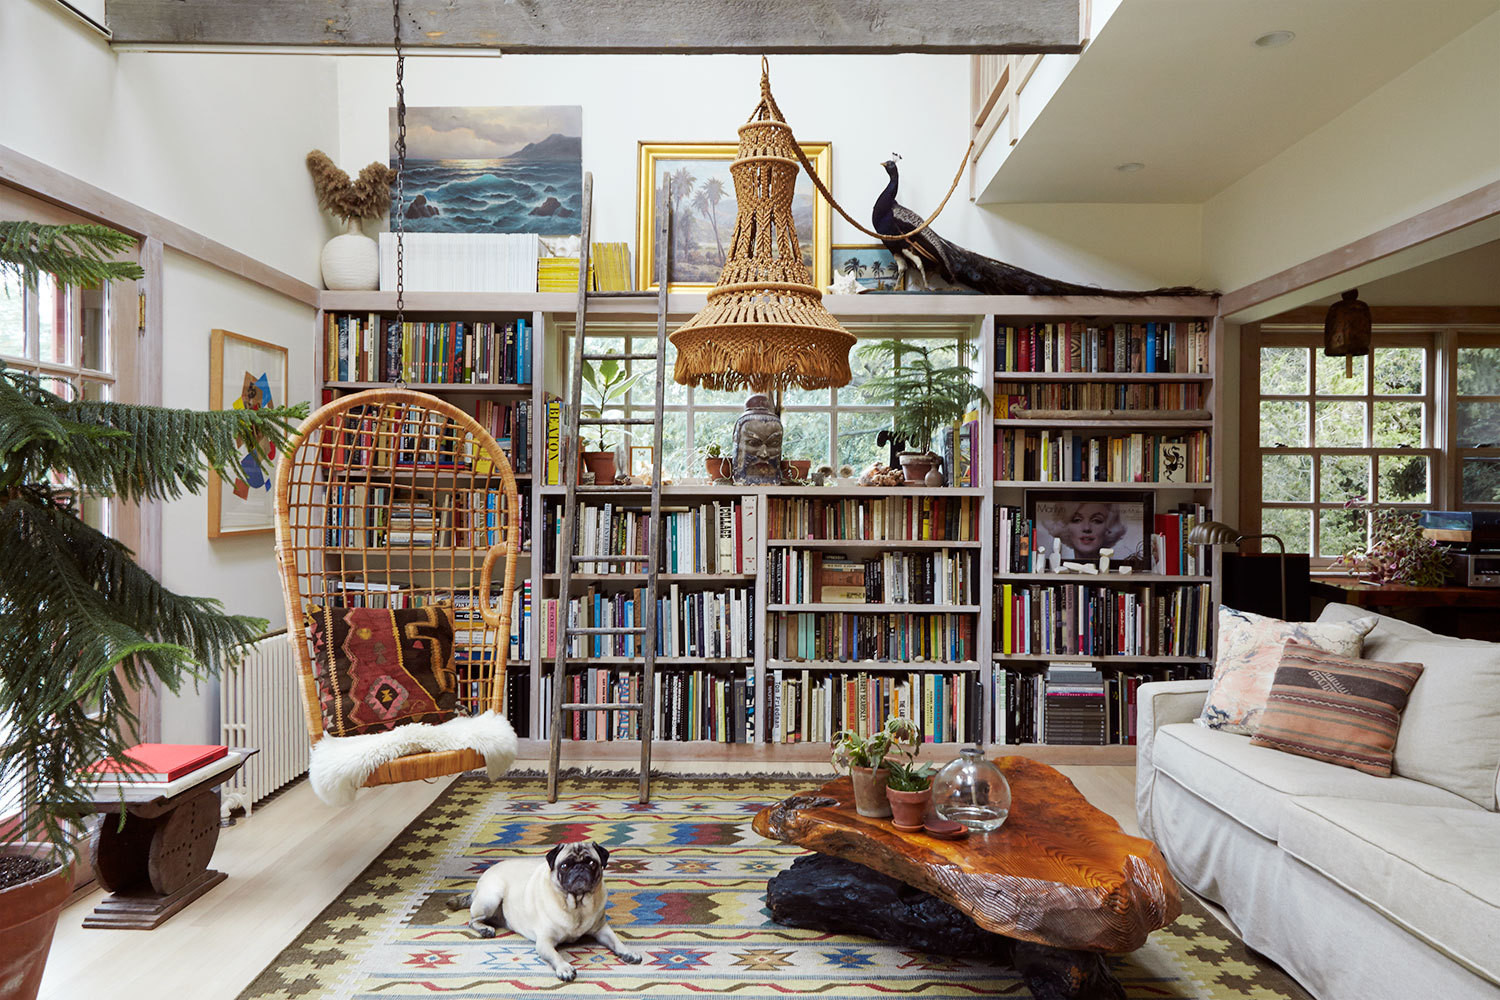 Vintage rug, adorable pug, and a heckton of books in upstate New York. Image from  Lonny